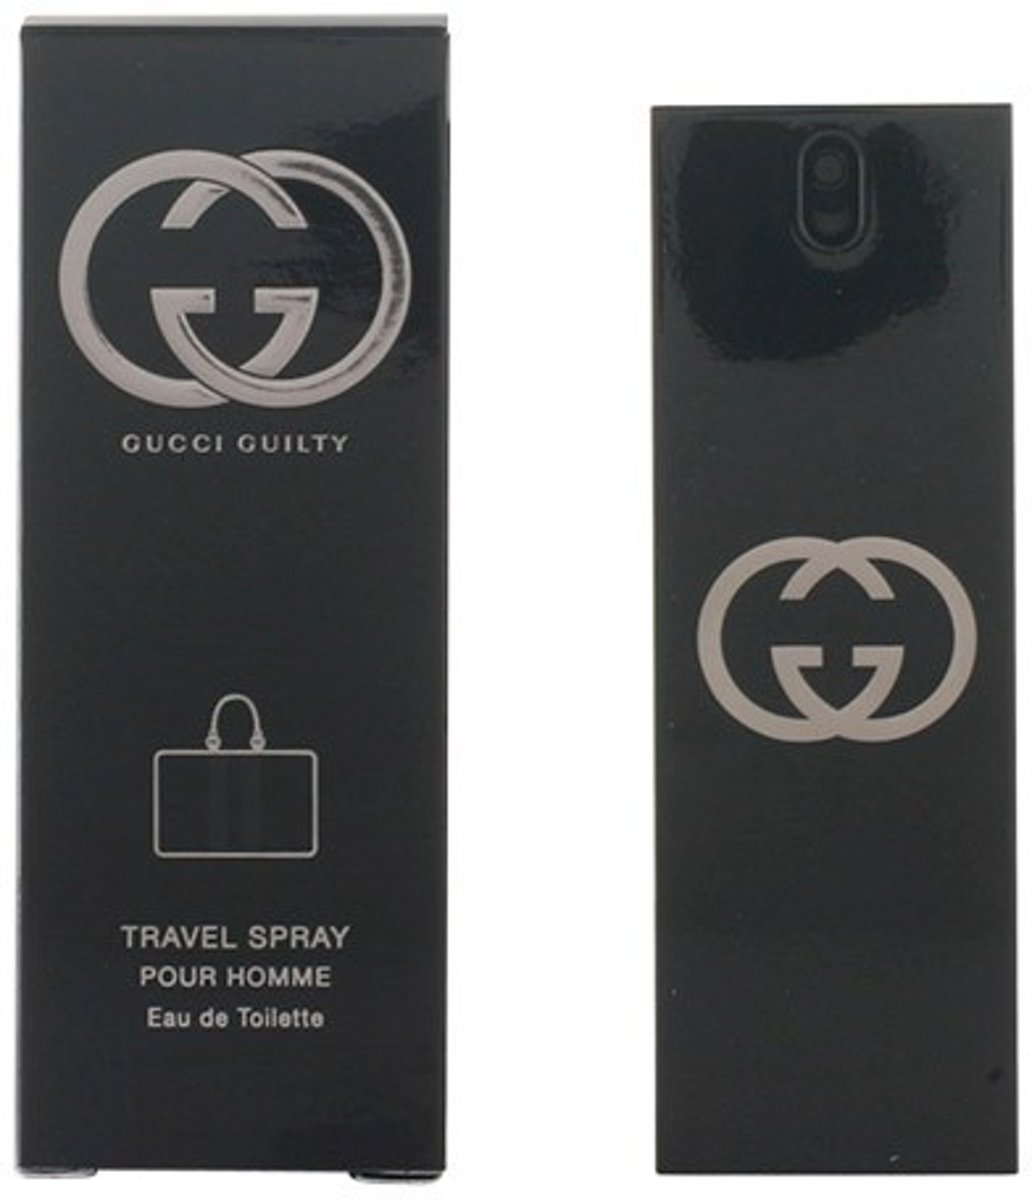 MULTI BUNDEL 2 stuks GUCCI GUILTY POUR HOMME Eau de Toilette Spray 30 ml